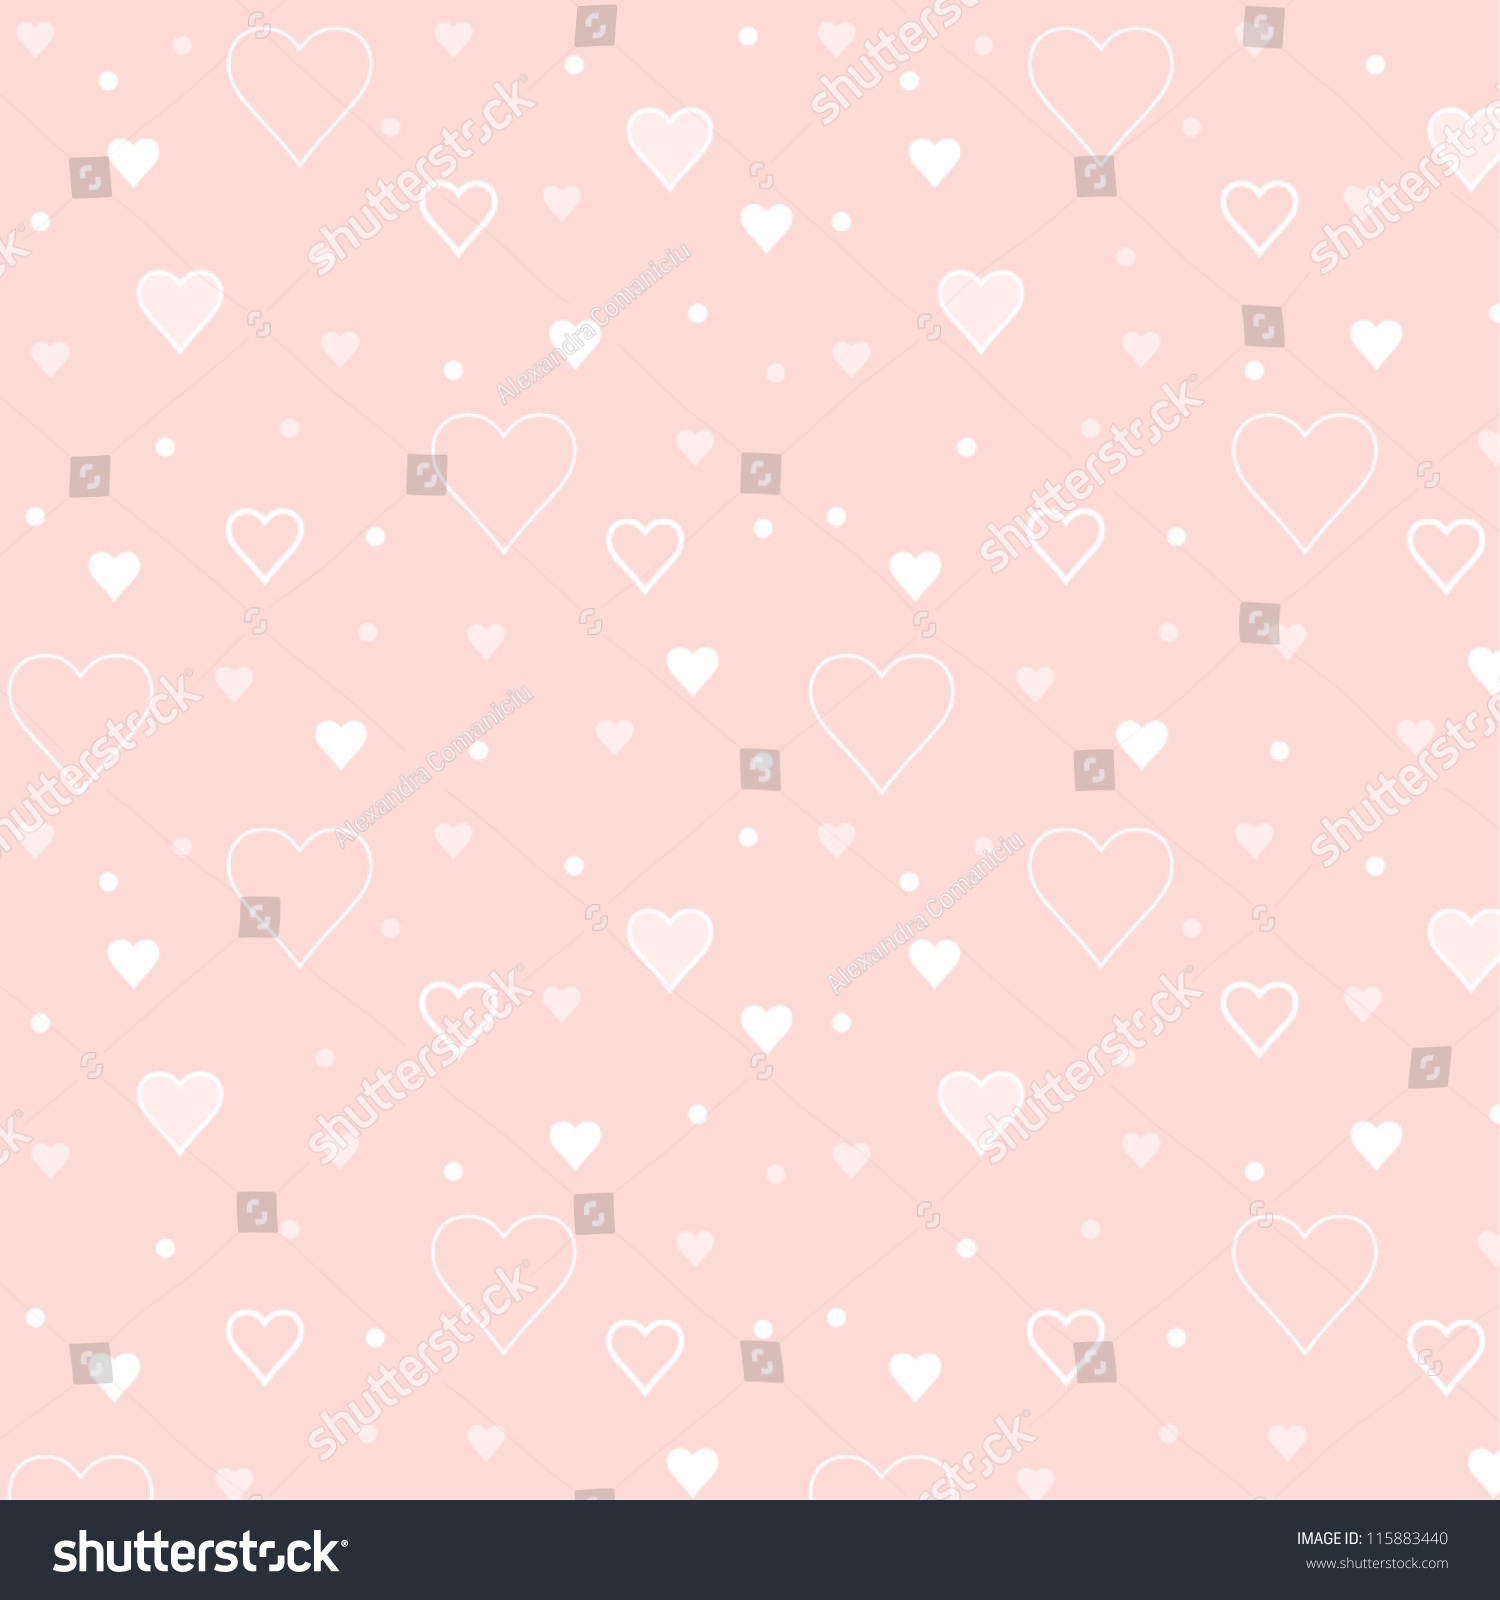 Vector Illustration Pattern Of Small Hearts On Light Pink ...